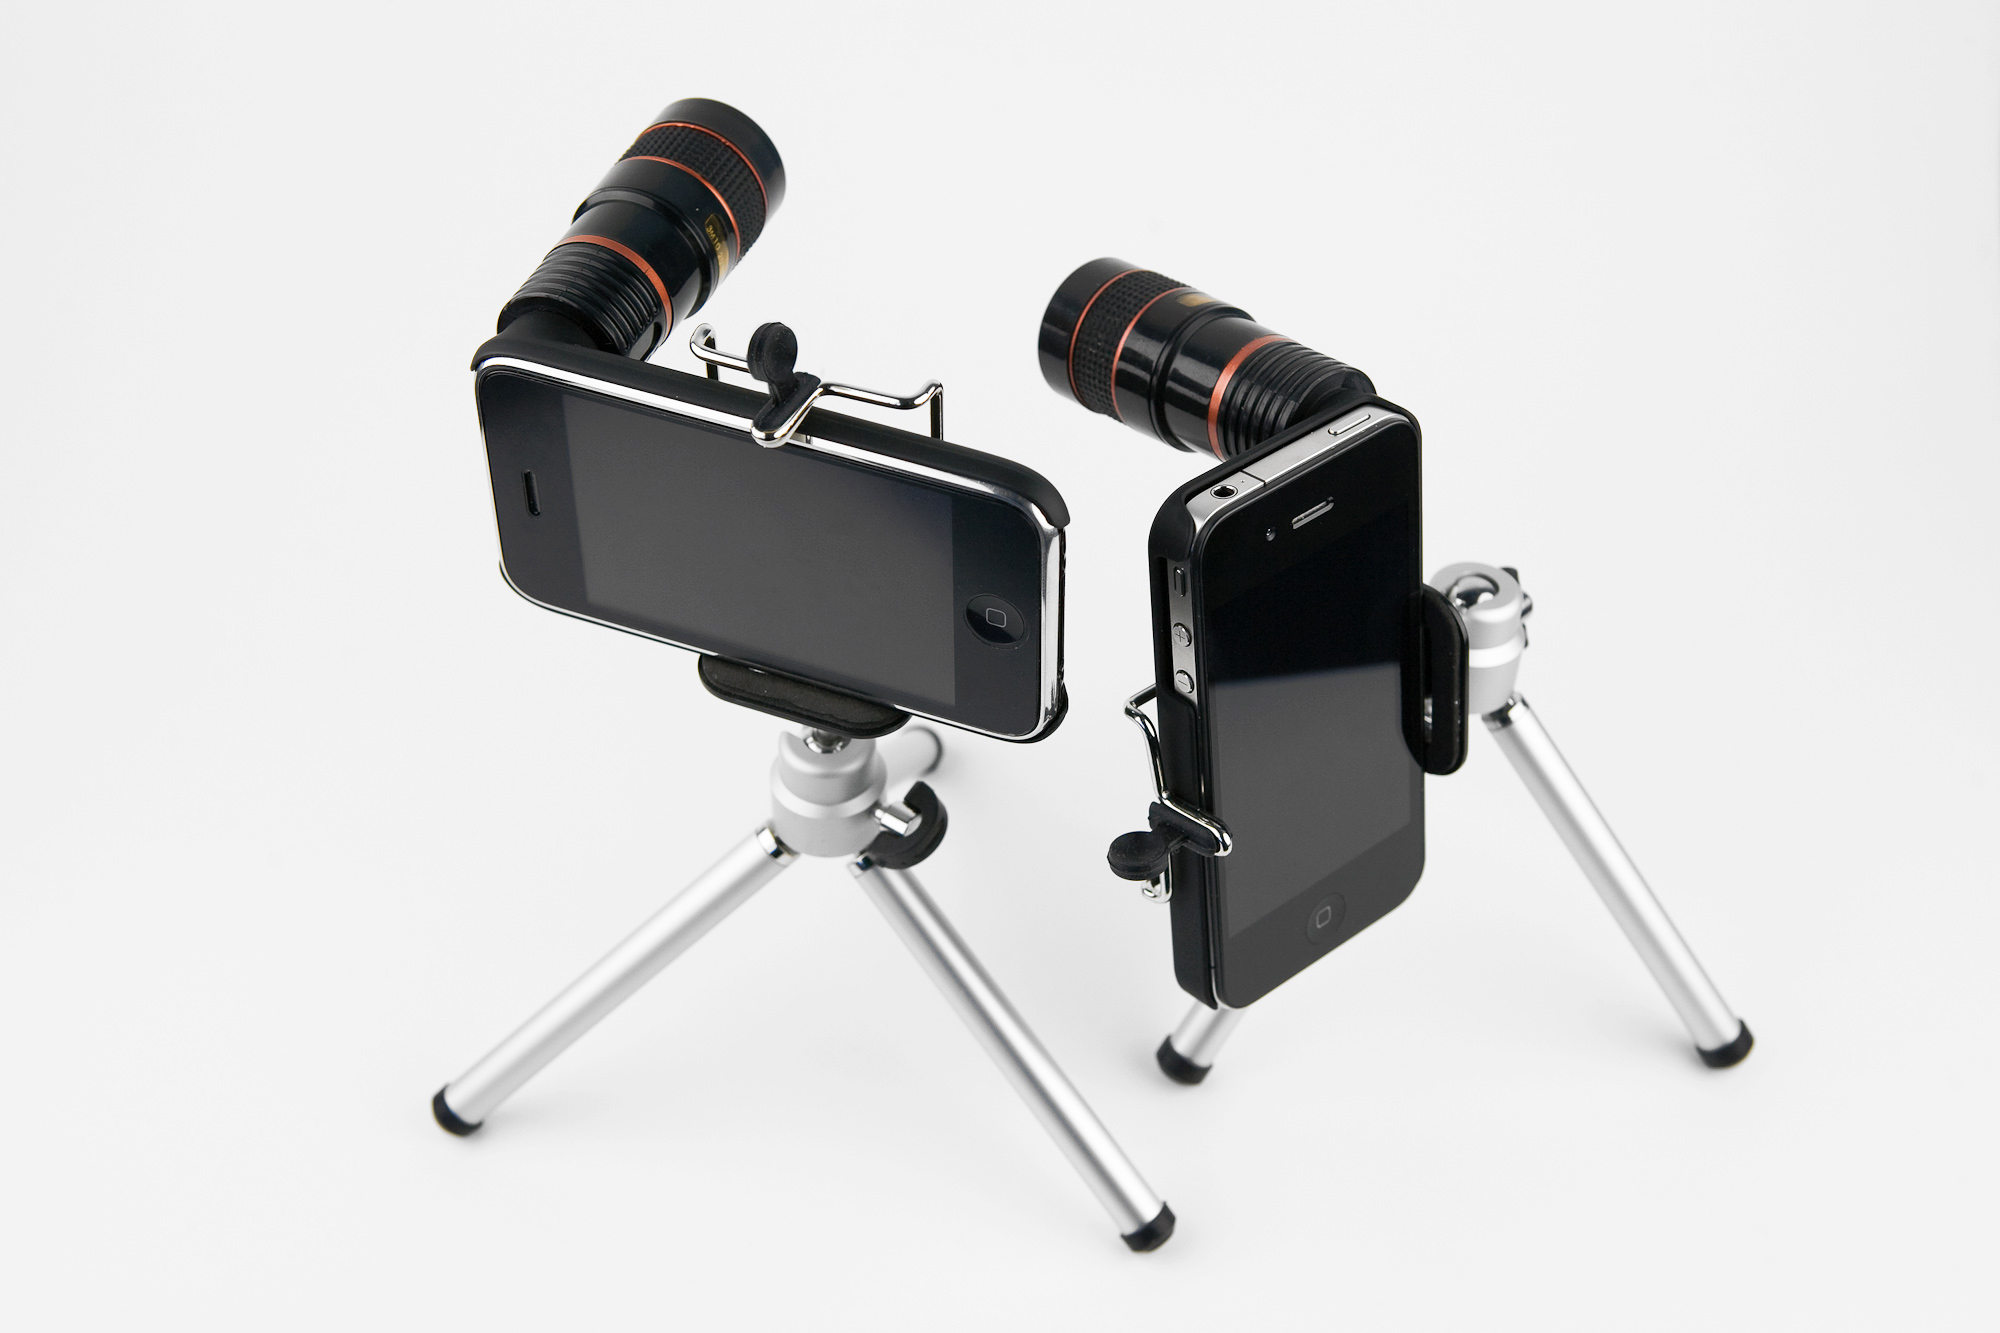 Review Iphone Telephoto Lens By Photojojo 8x Zoom For The Iphone